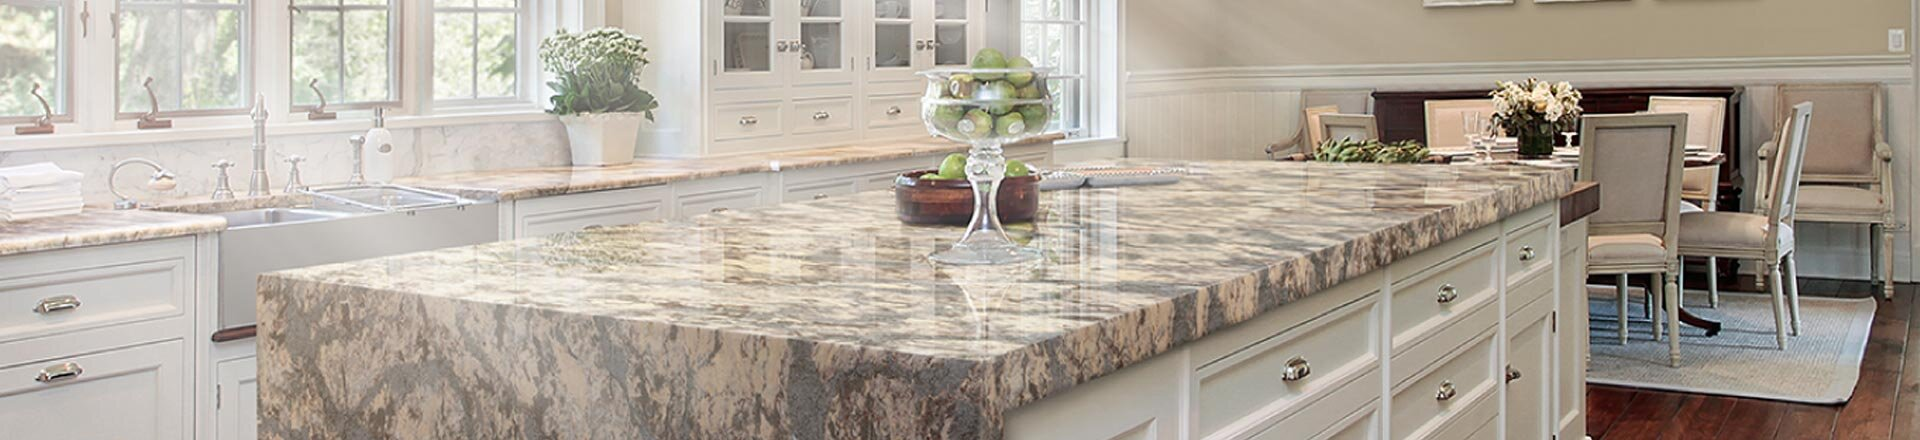 Pf Custom Countertops